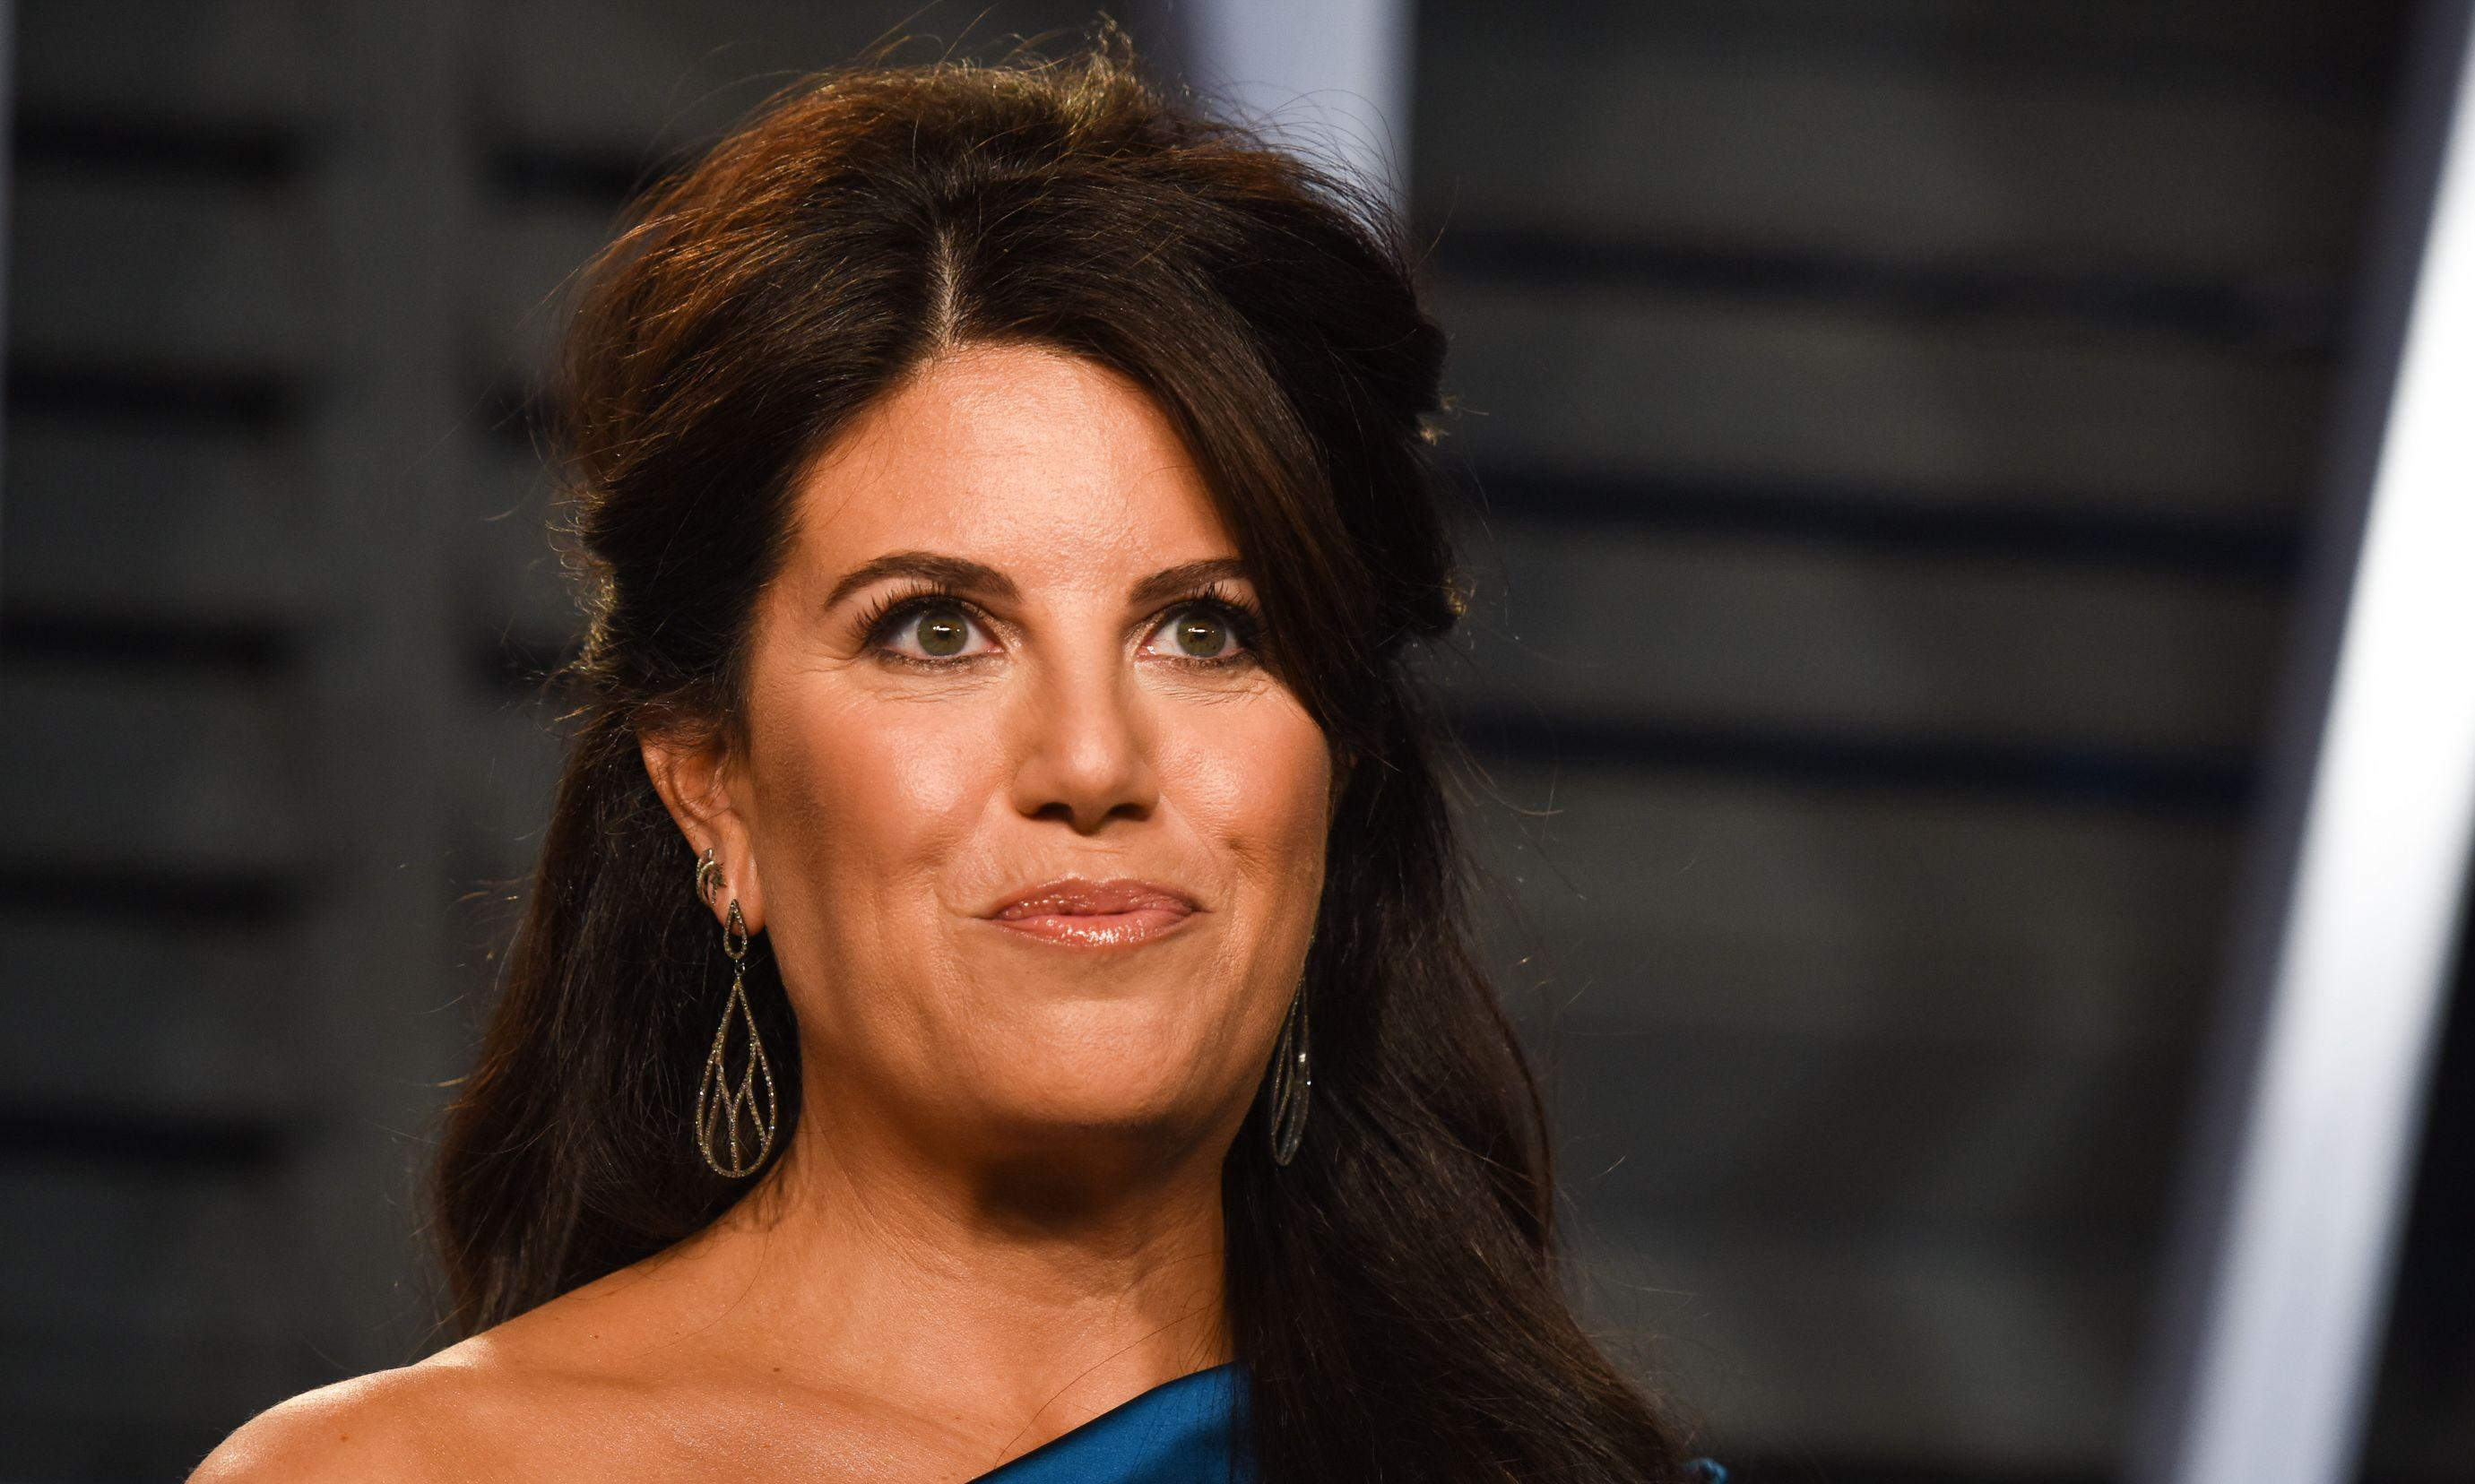 Good for you, Monica Lewinsky, for finally taking control of your story